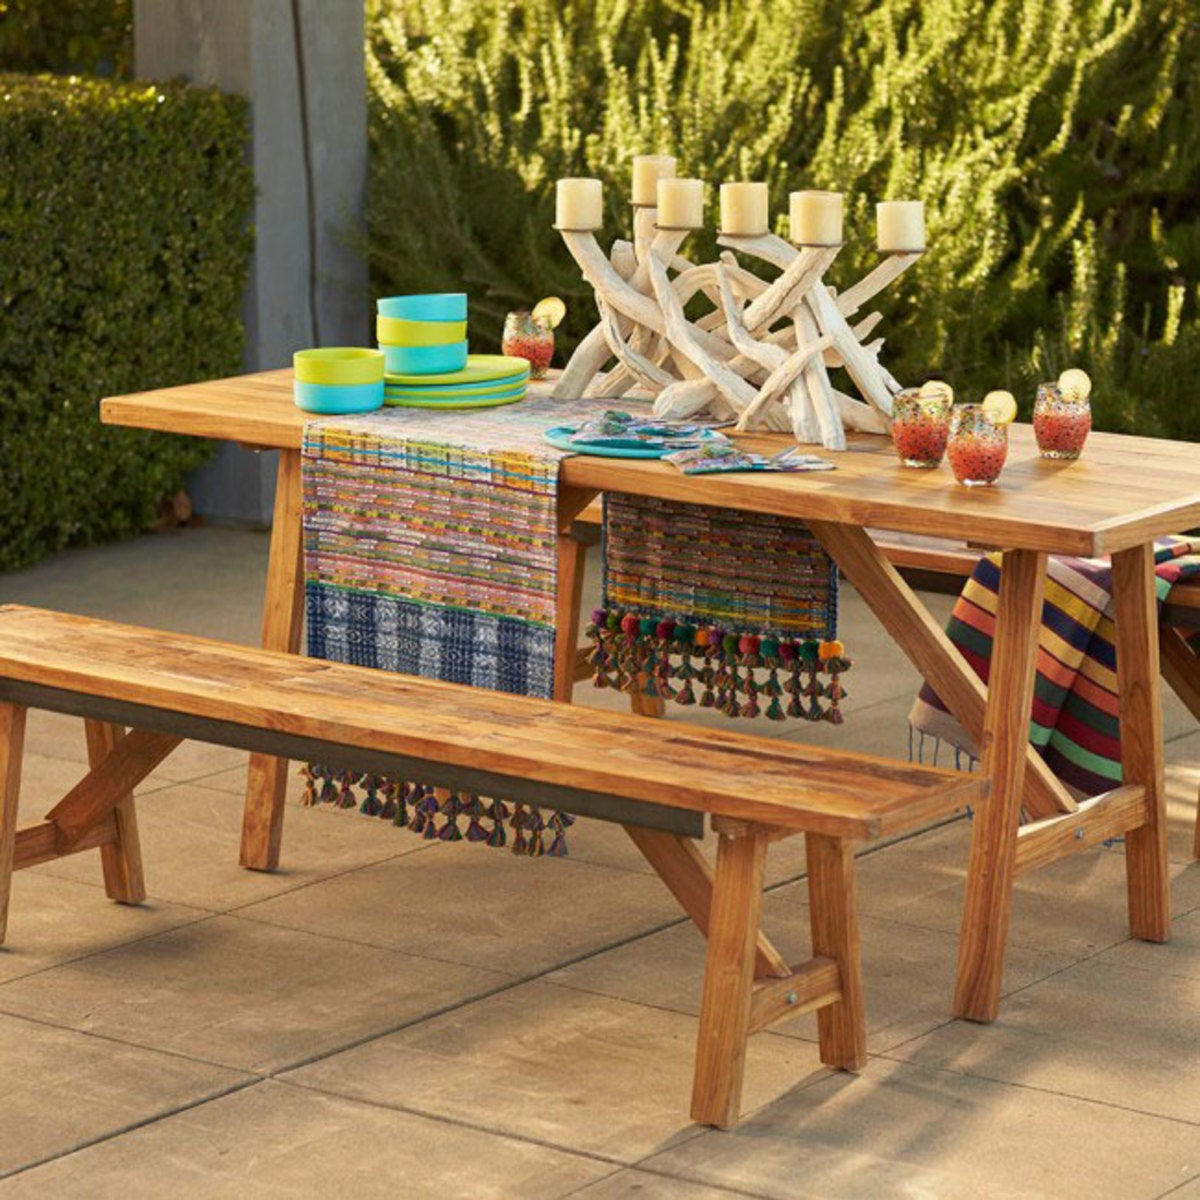 Teak Four-Season Table